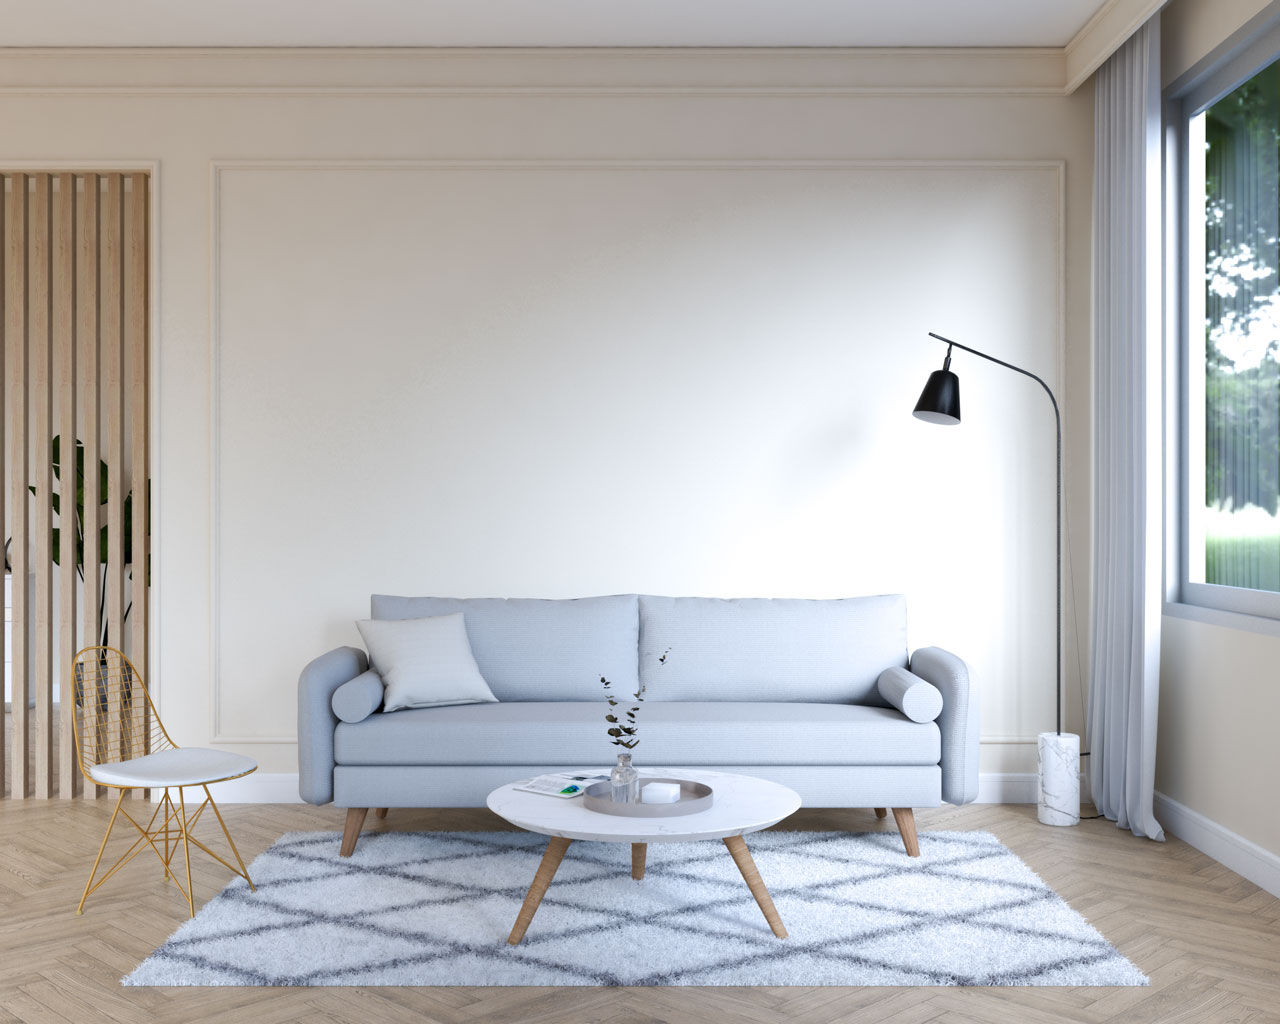 Simple light gray couch in front of beige wall